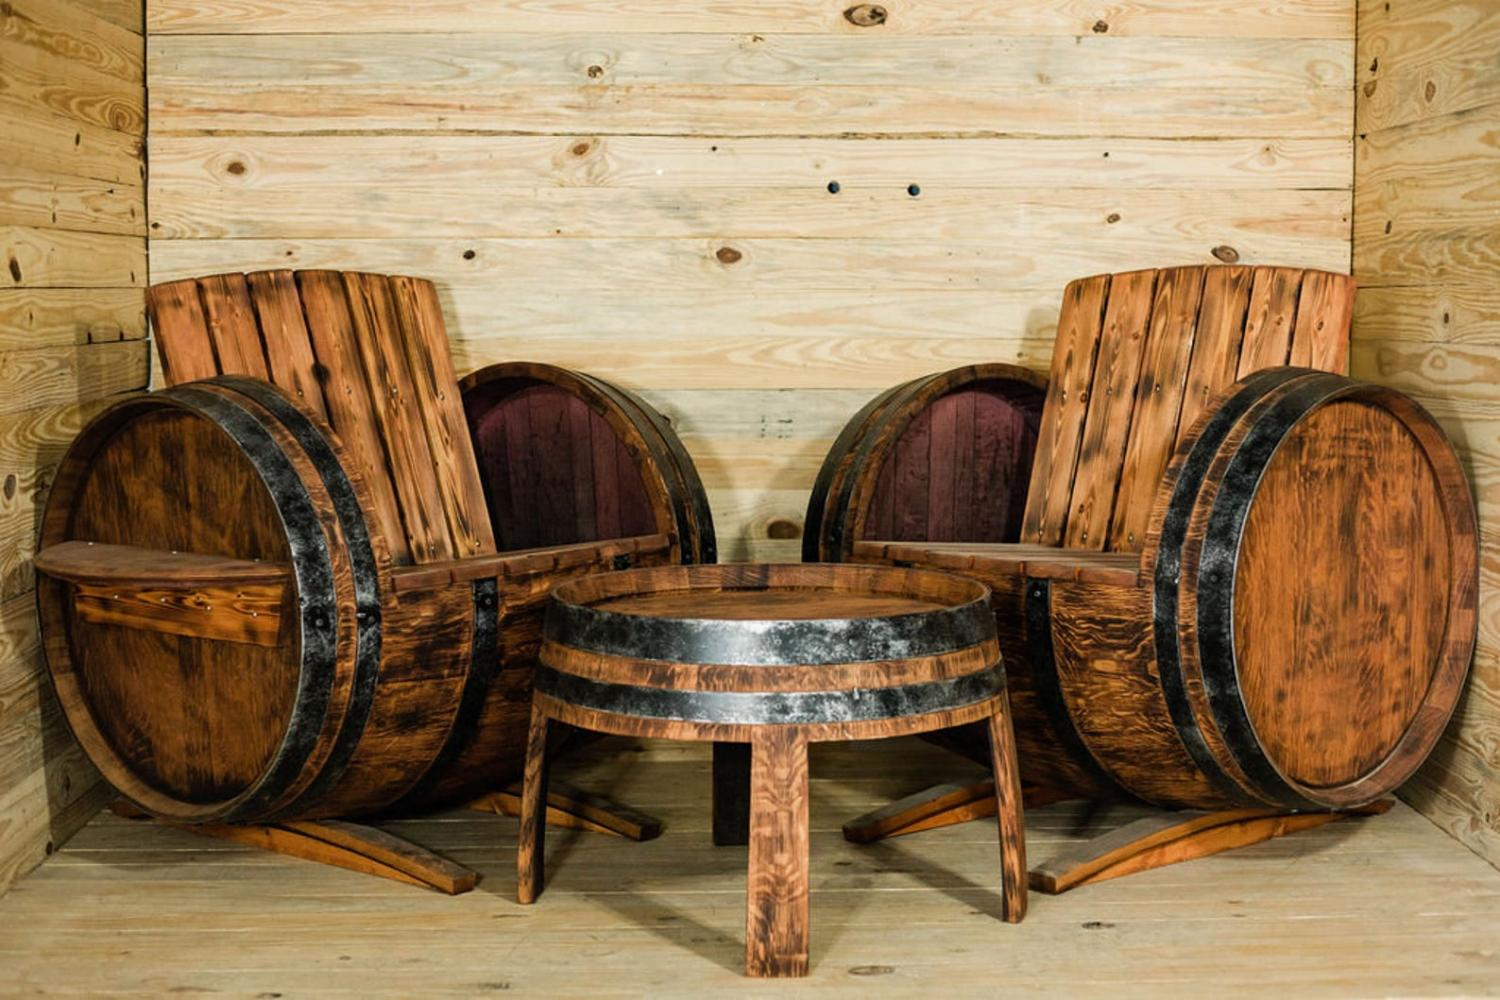 Authentic French Wine Barrel Patio Deck 3 Piece Set 2 Chairs and 1 Table